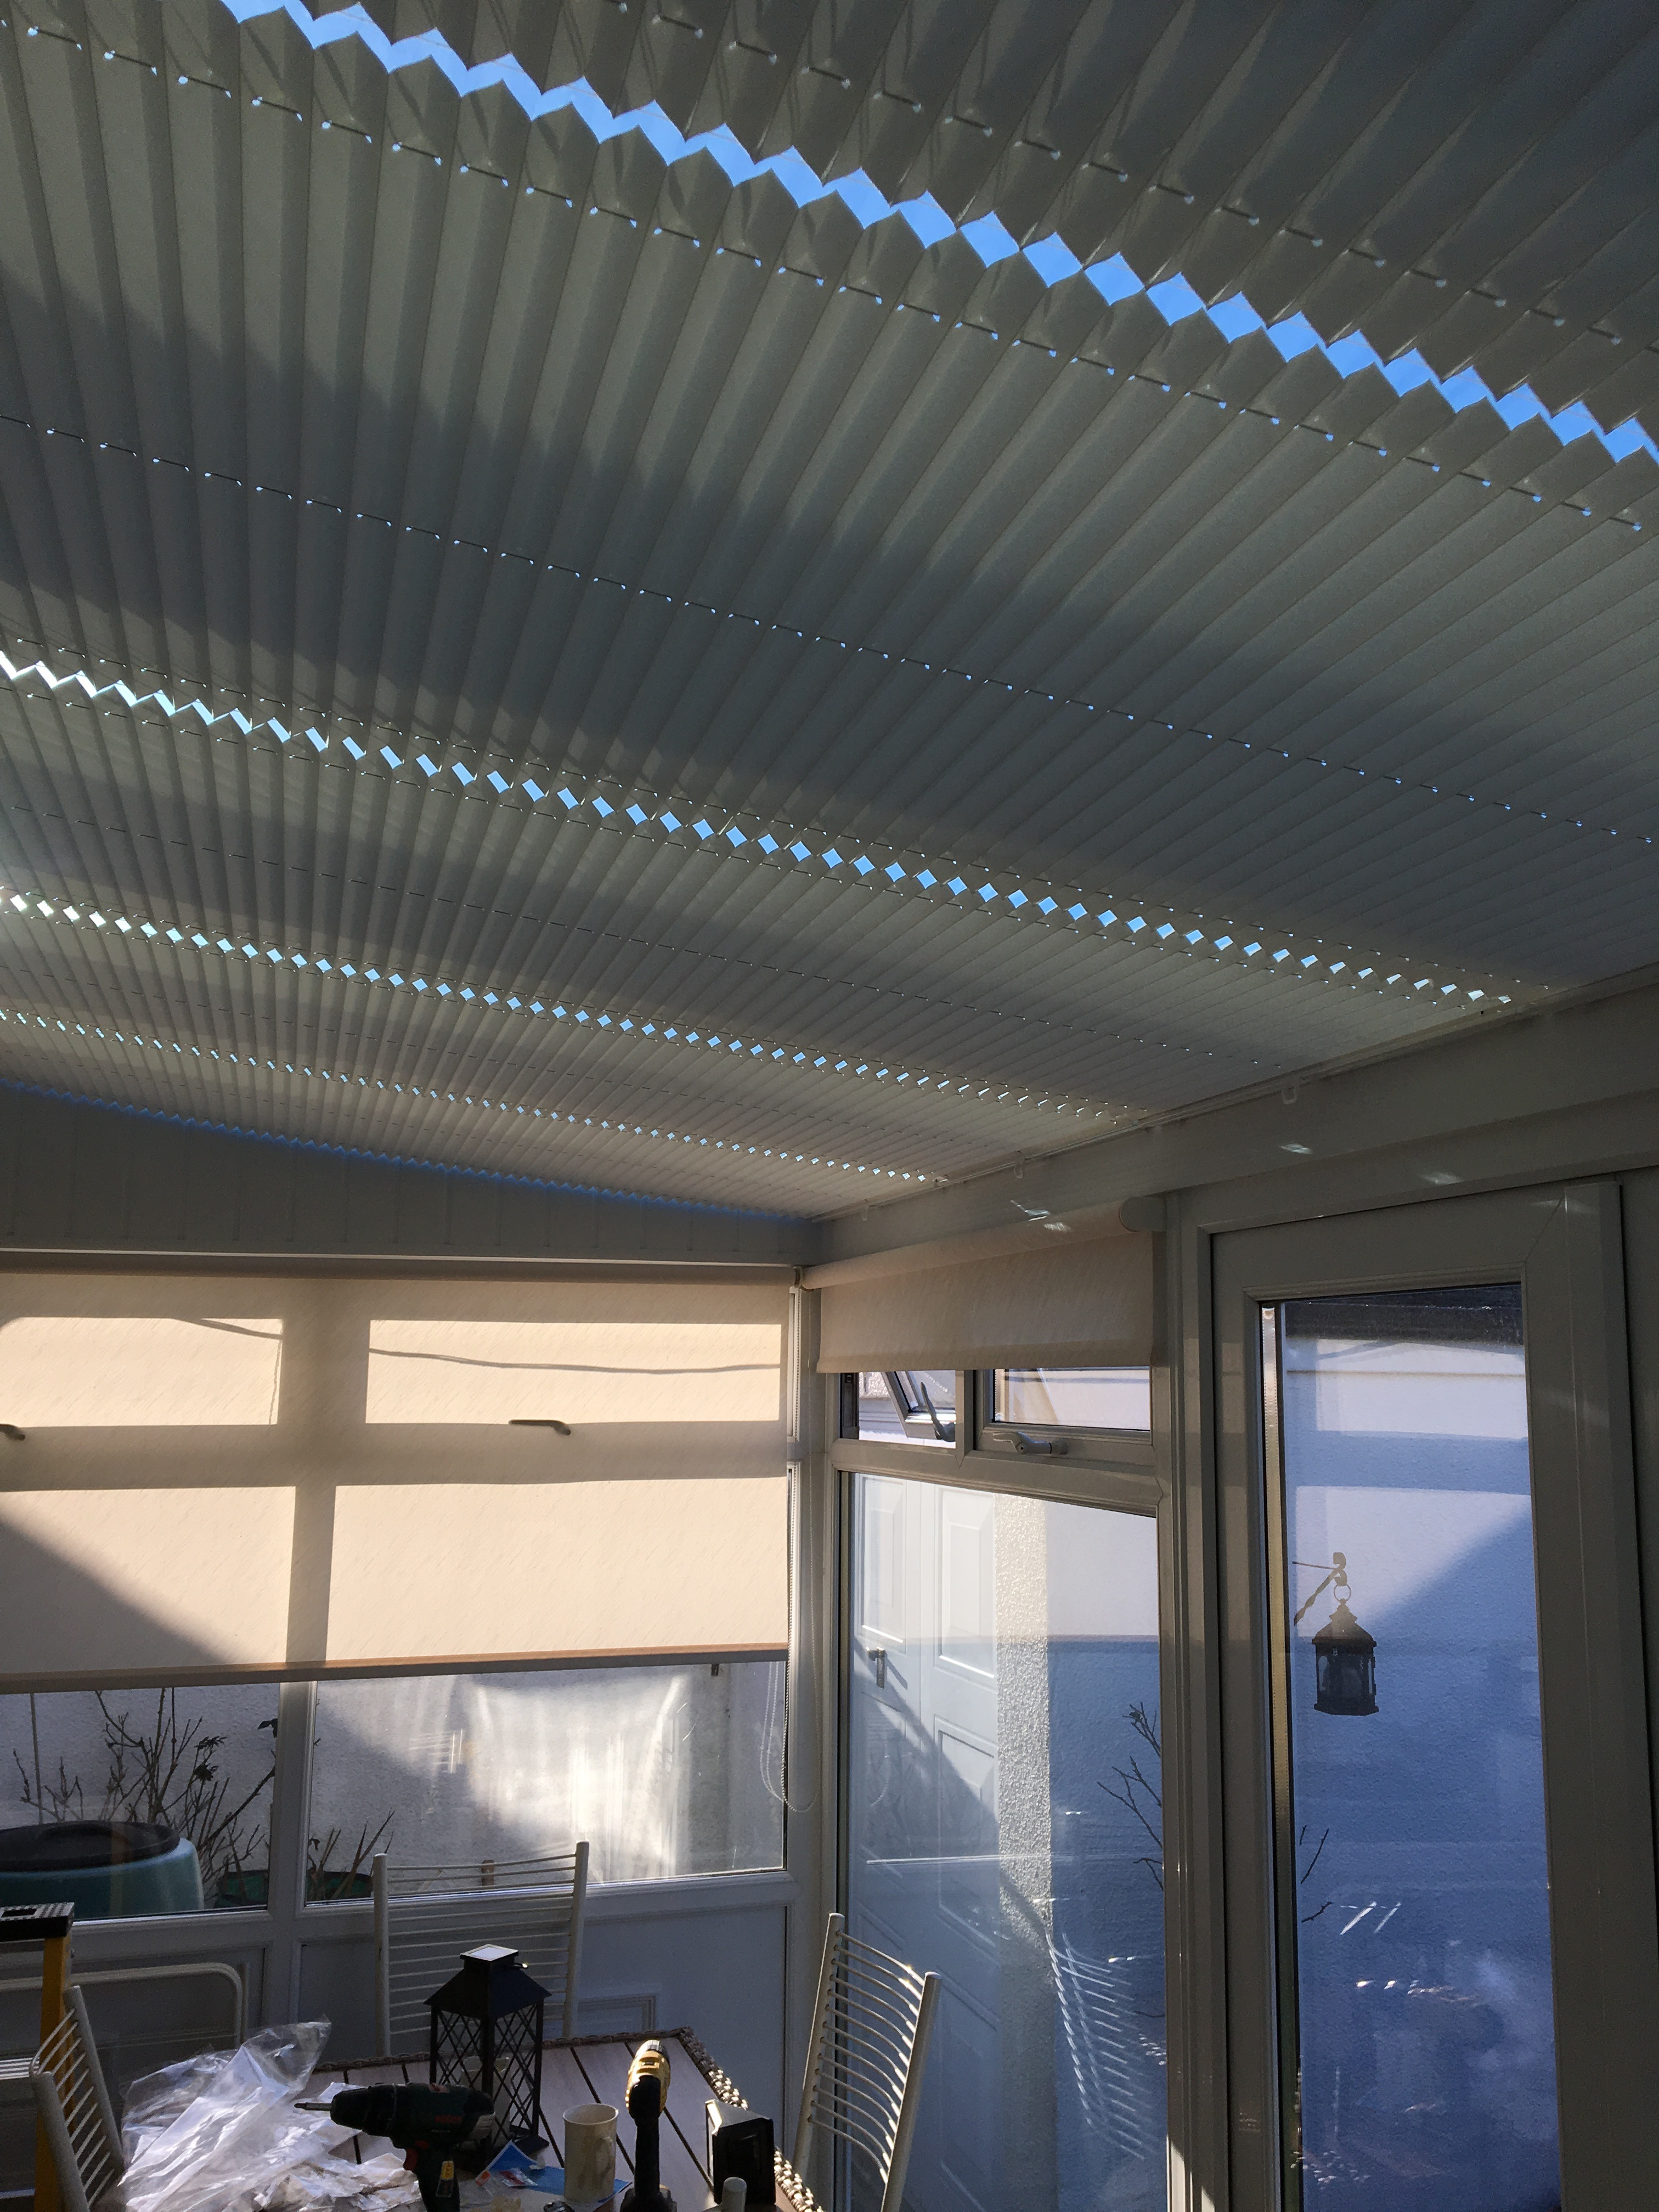 New Conservatory Roof, New Blinds Featured Image